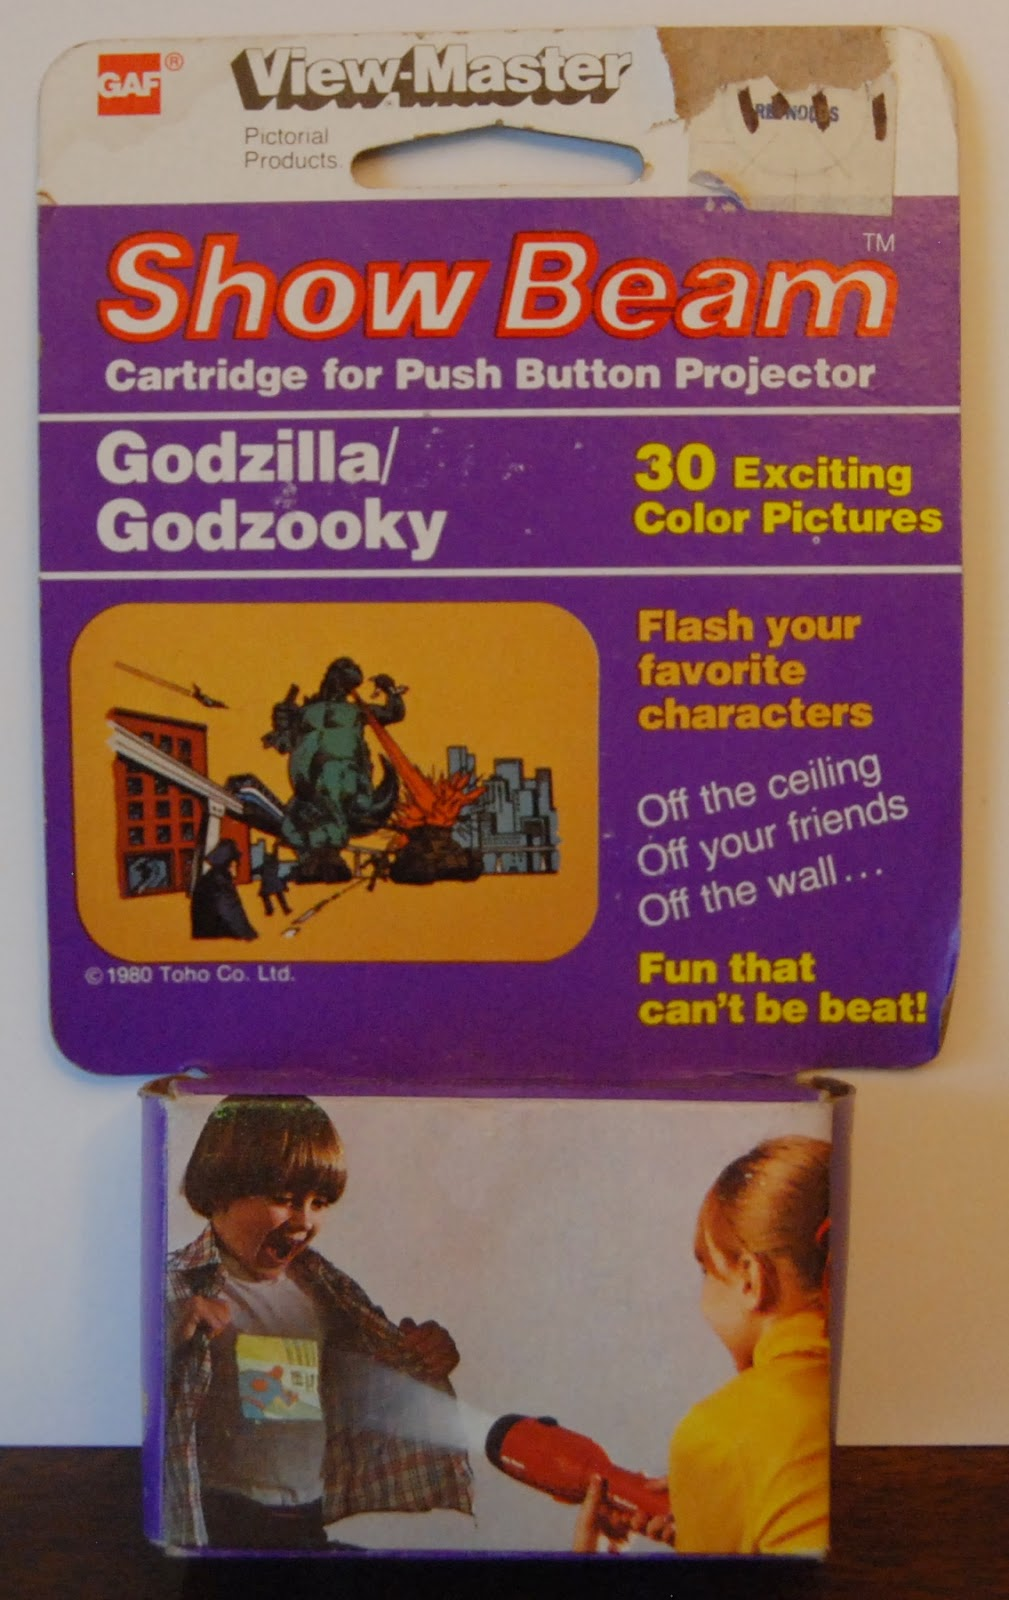 http://snakeandboris.blogspot.com/2014/08/view-master-show-beam-cartridge-1980.html